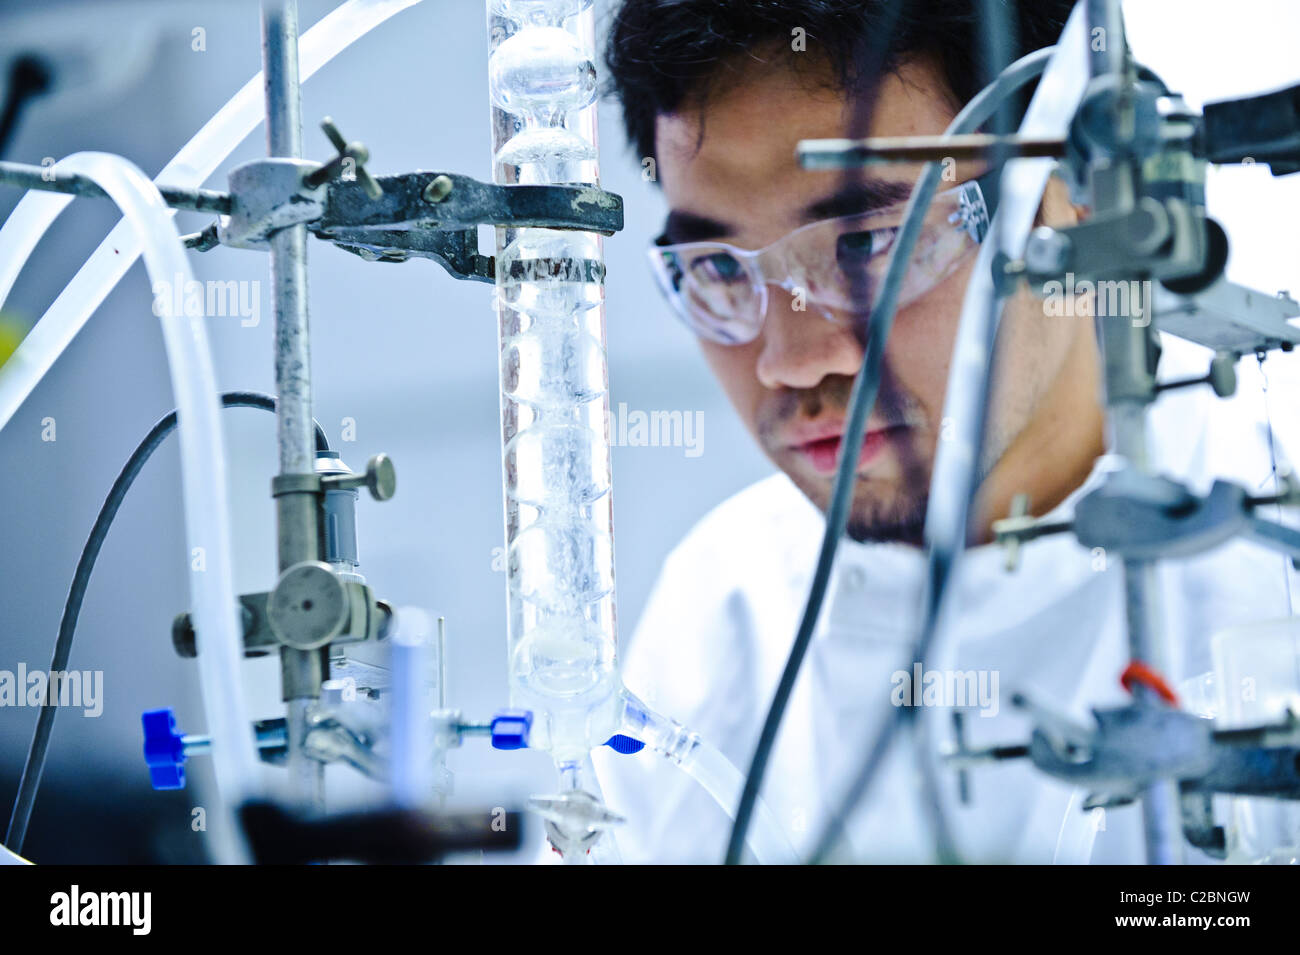 Young Asian male scientist portant des lunettes clair et blanc manteau la science à tube de verre à l'appareil Photo Stock